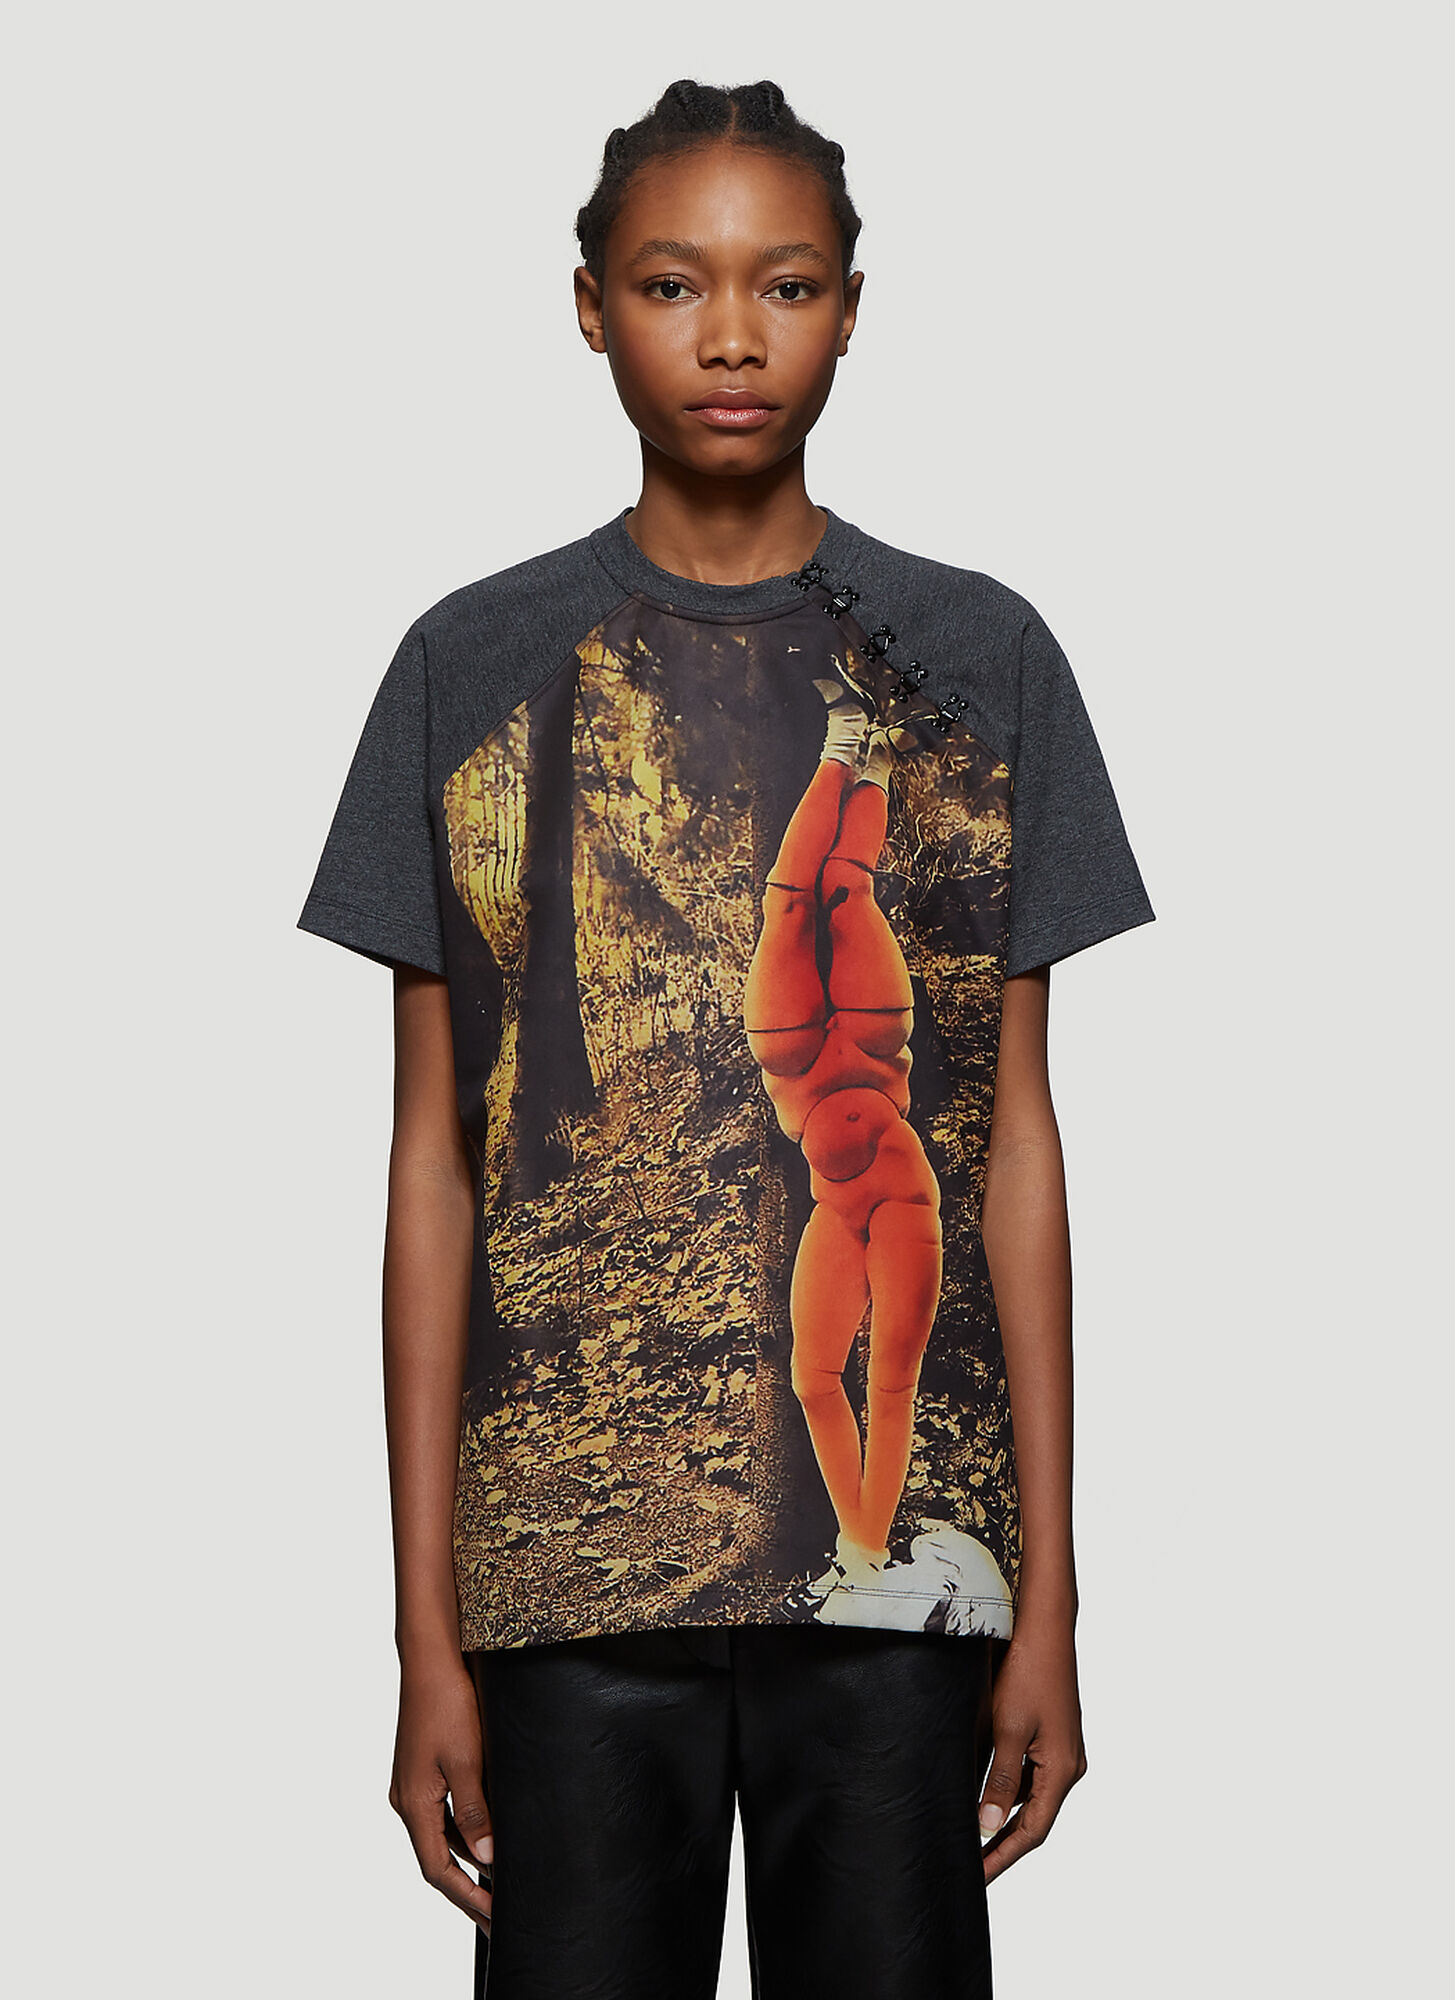 Olivier Theyskens Hook-And-Eye Printed T-Shirt in Grey